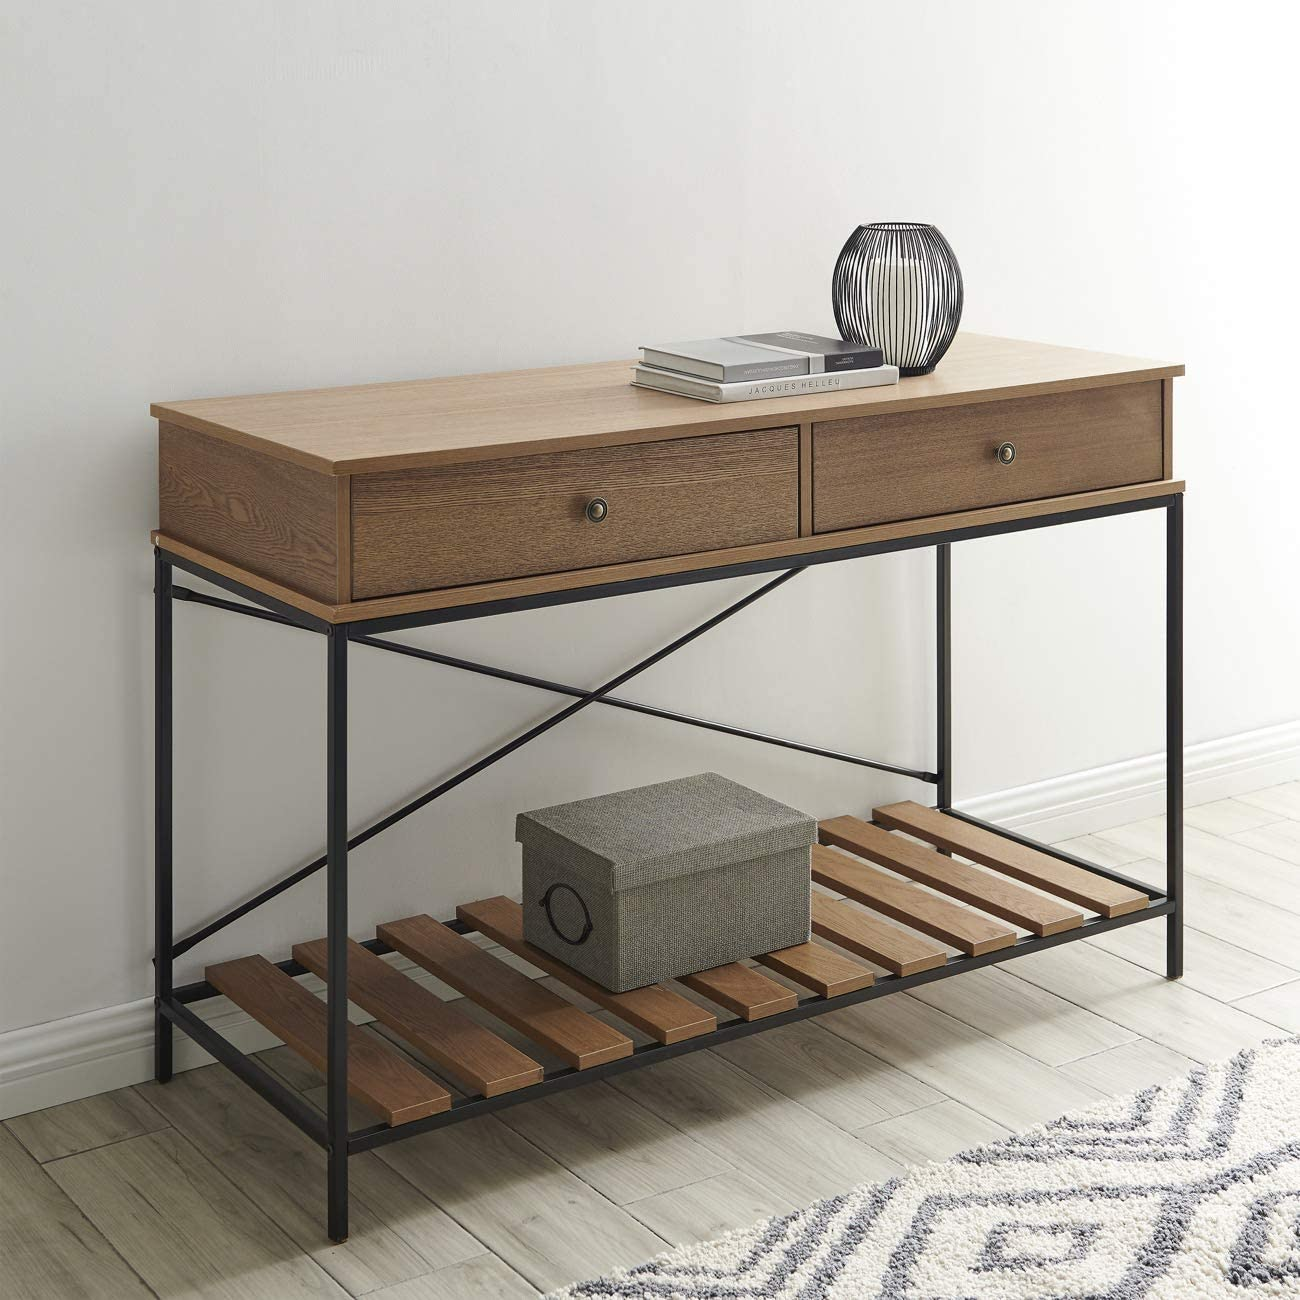 BELLEZE Traditional Wood and Metal Criss-Cross Console Table, Brown